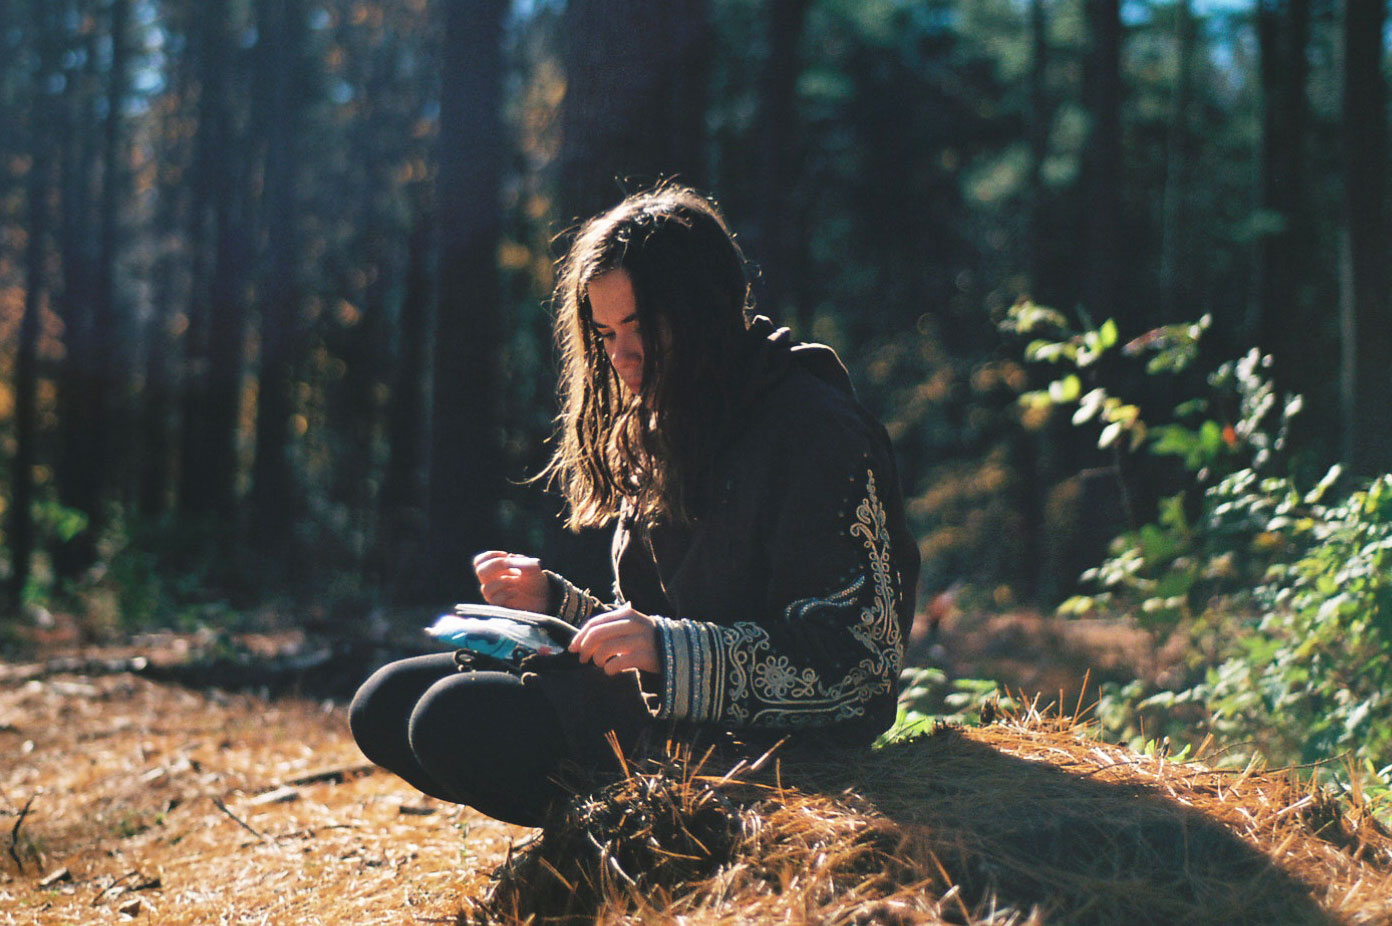 Photograph of a teen seated at the edge of a treed area.